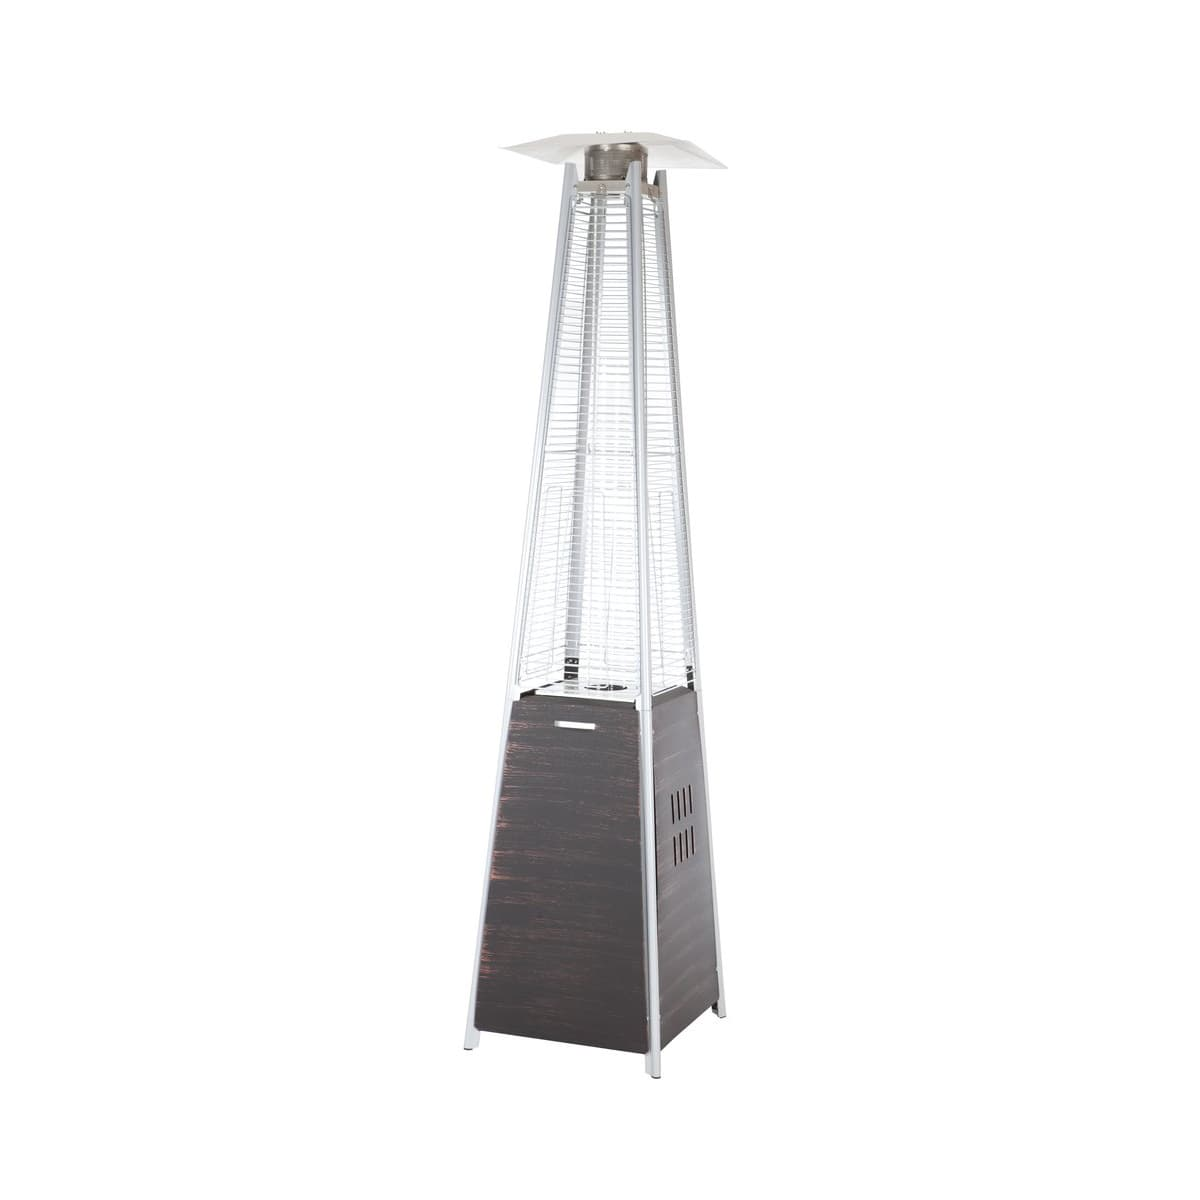 Coronado Bronze Pyramid Flame Patio Heater